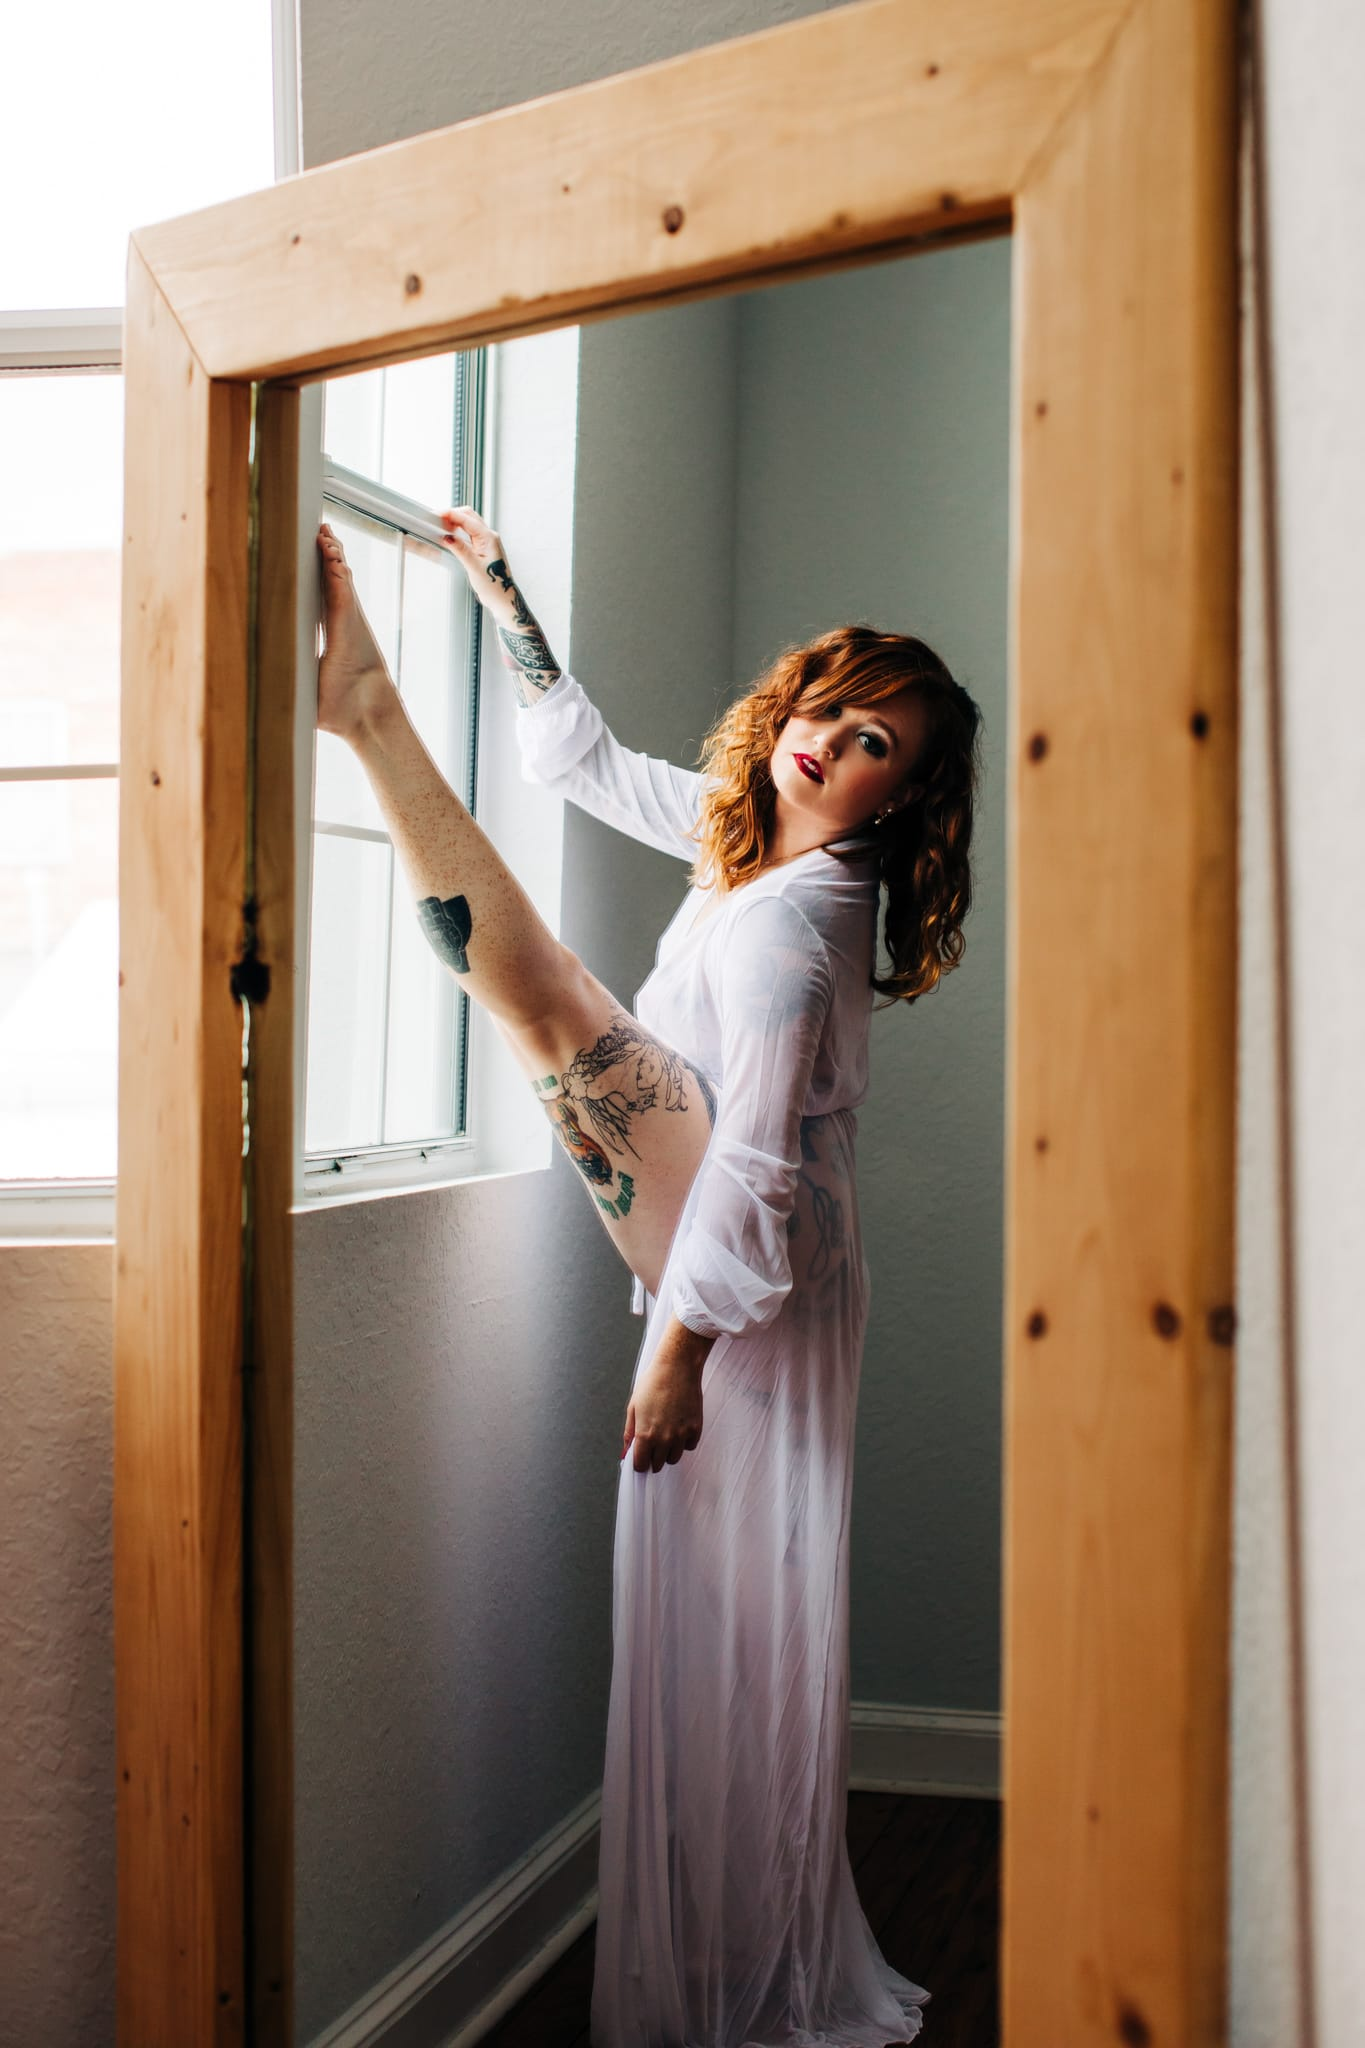 girl stretching in mirror reflection with long white robe on